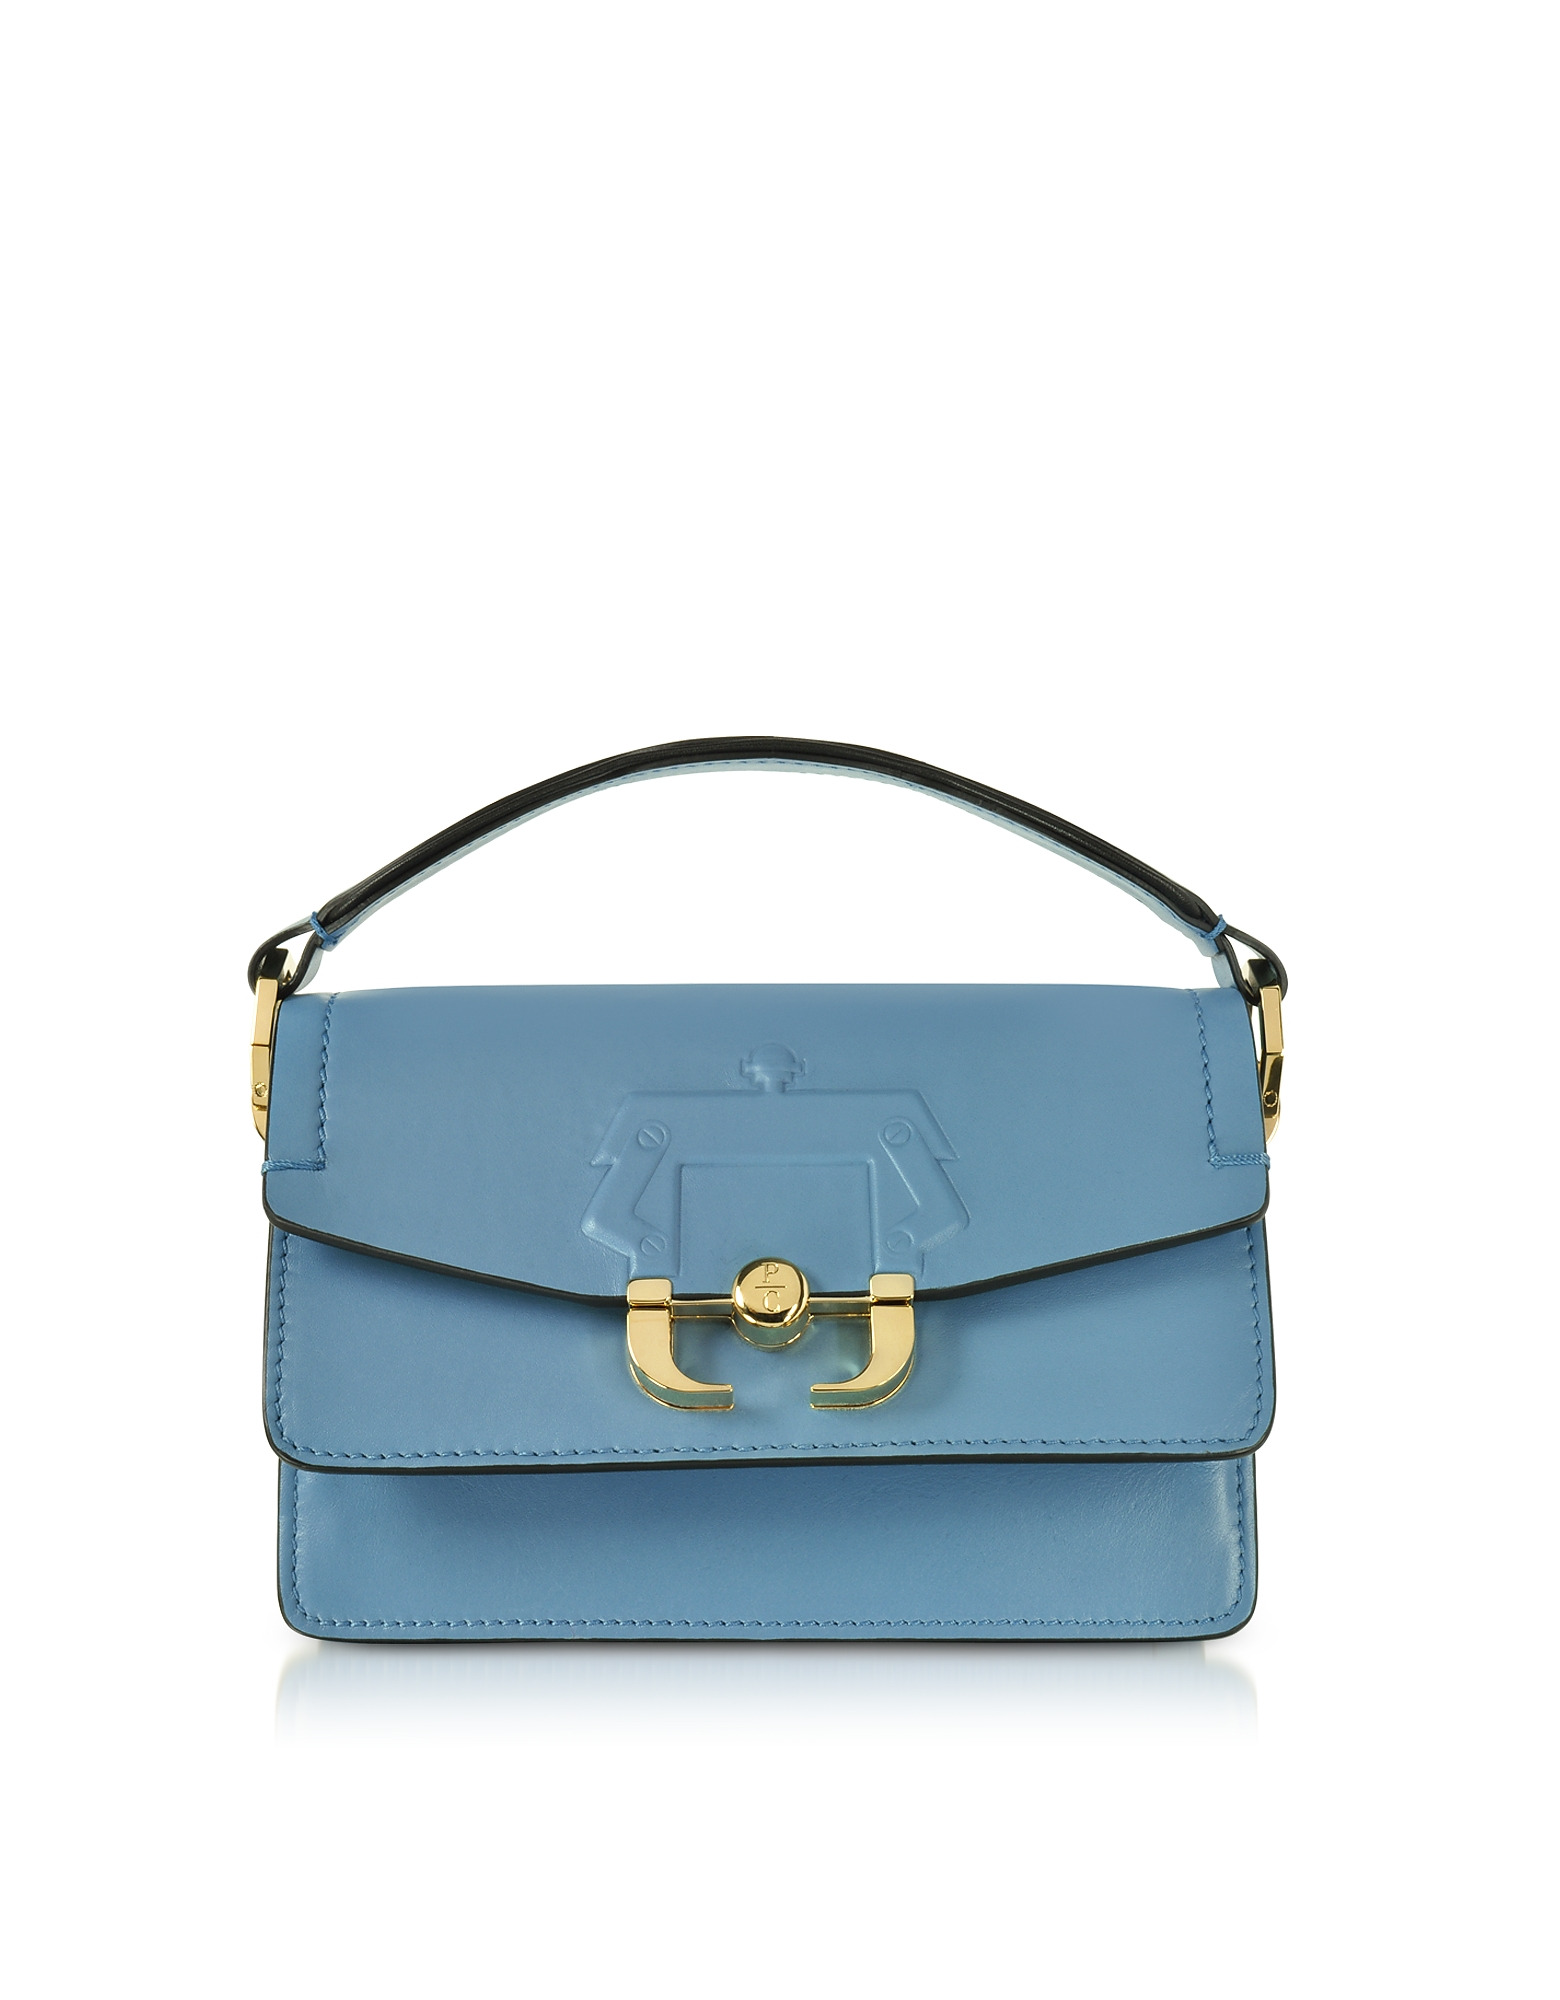 Paula Cademartori Handbags, Lichen Blue Leather Twi Twi Bag